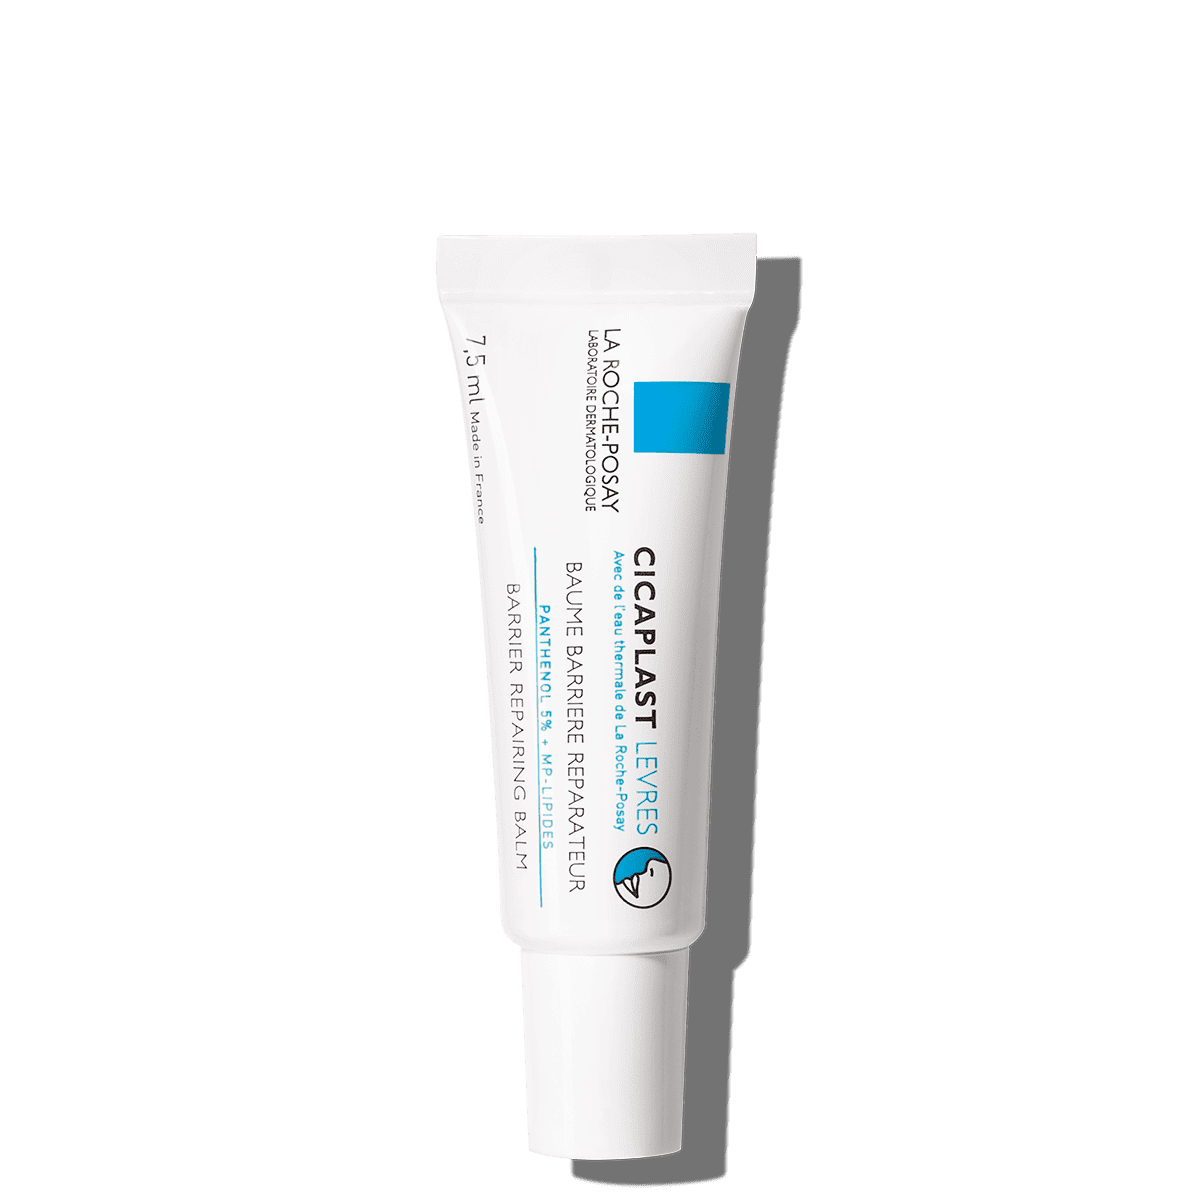 La Roche Posay ProductPage Damaged Cicaplast Levres Barrier Repairing